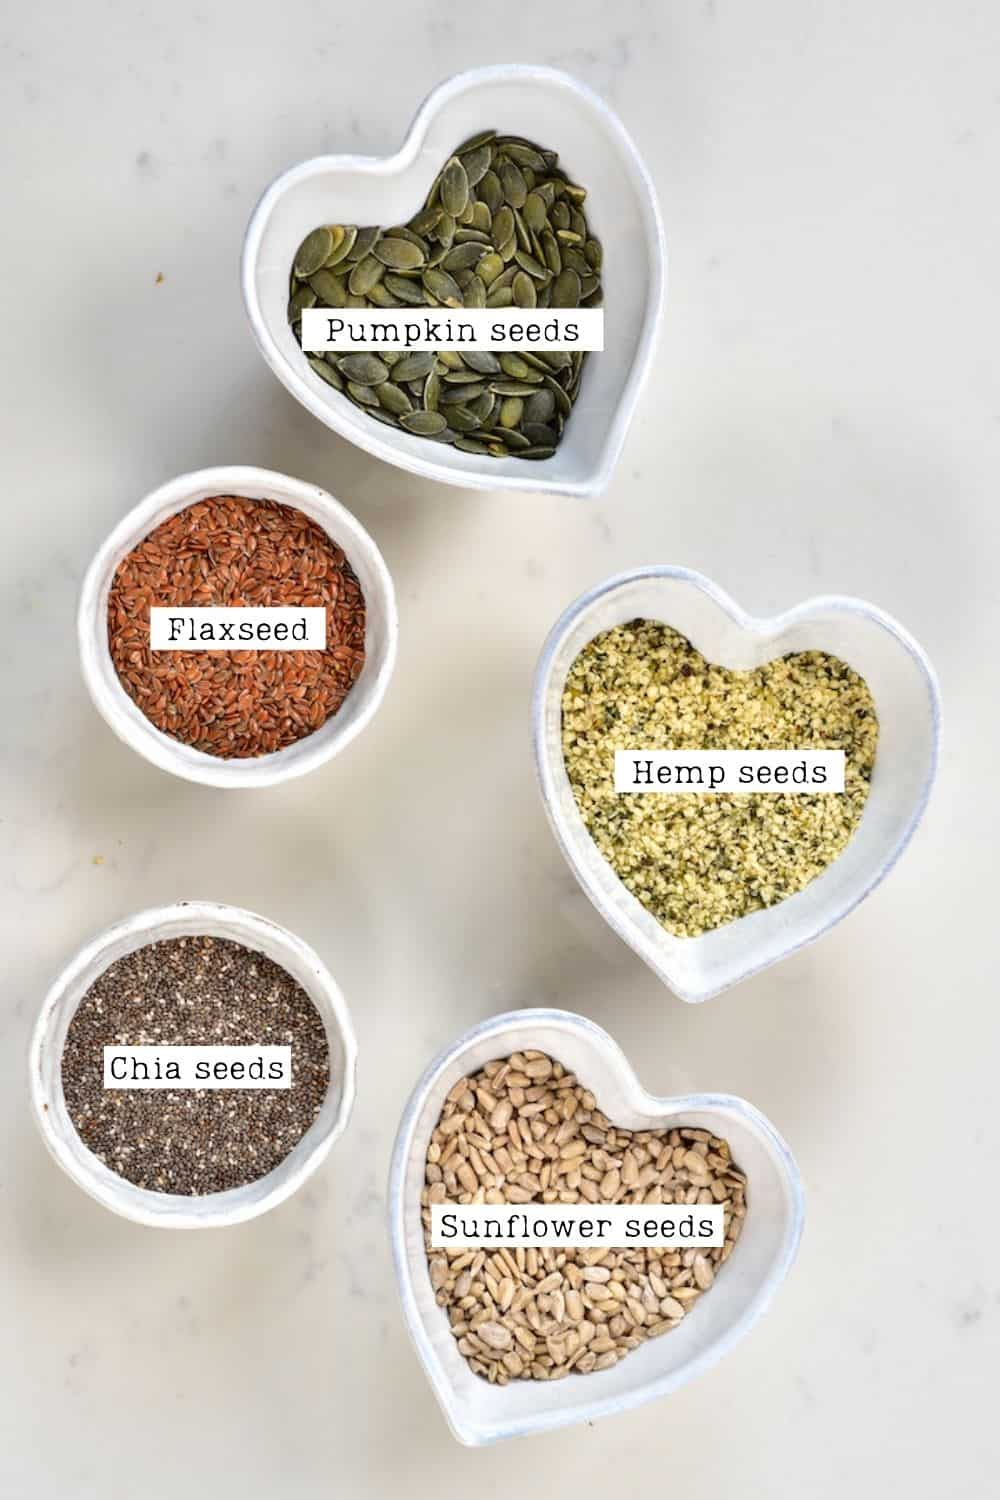 Omega seed mix ingredients